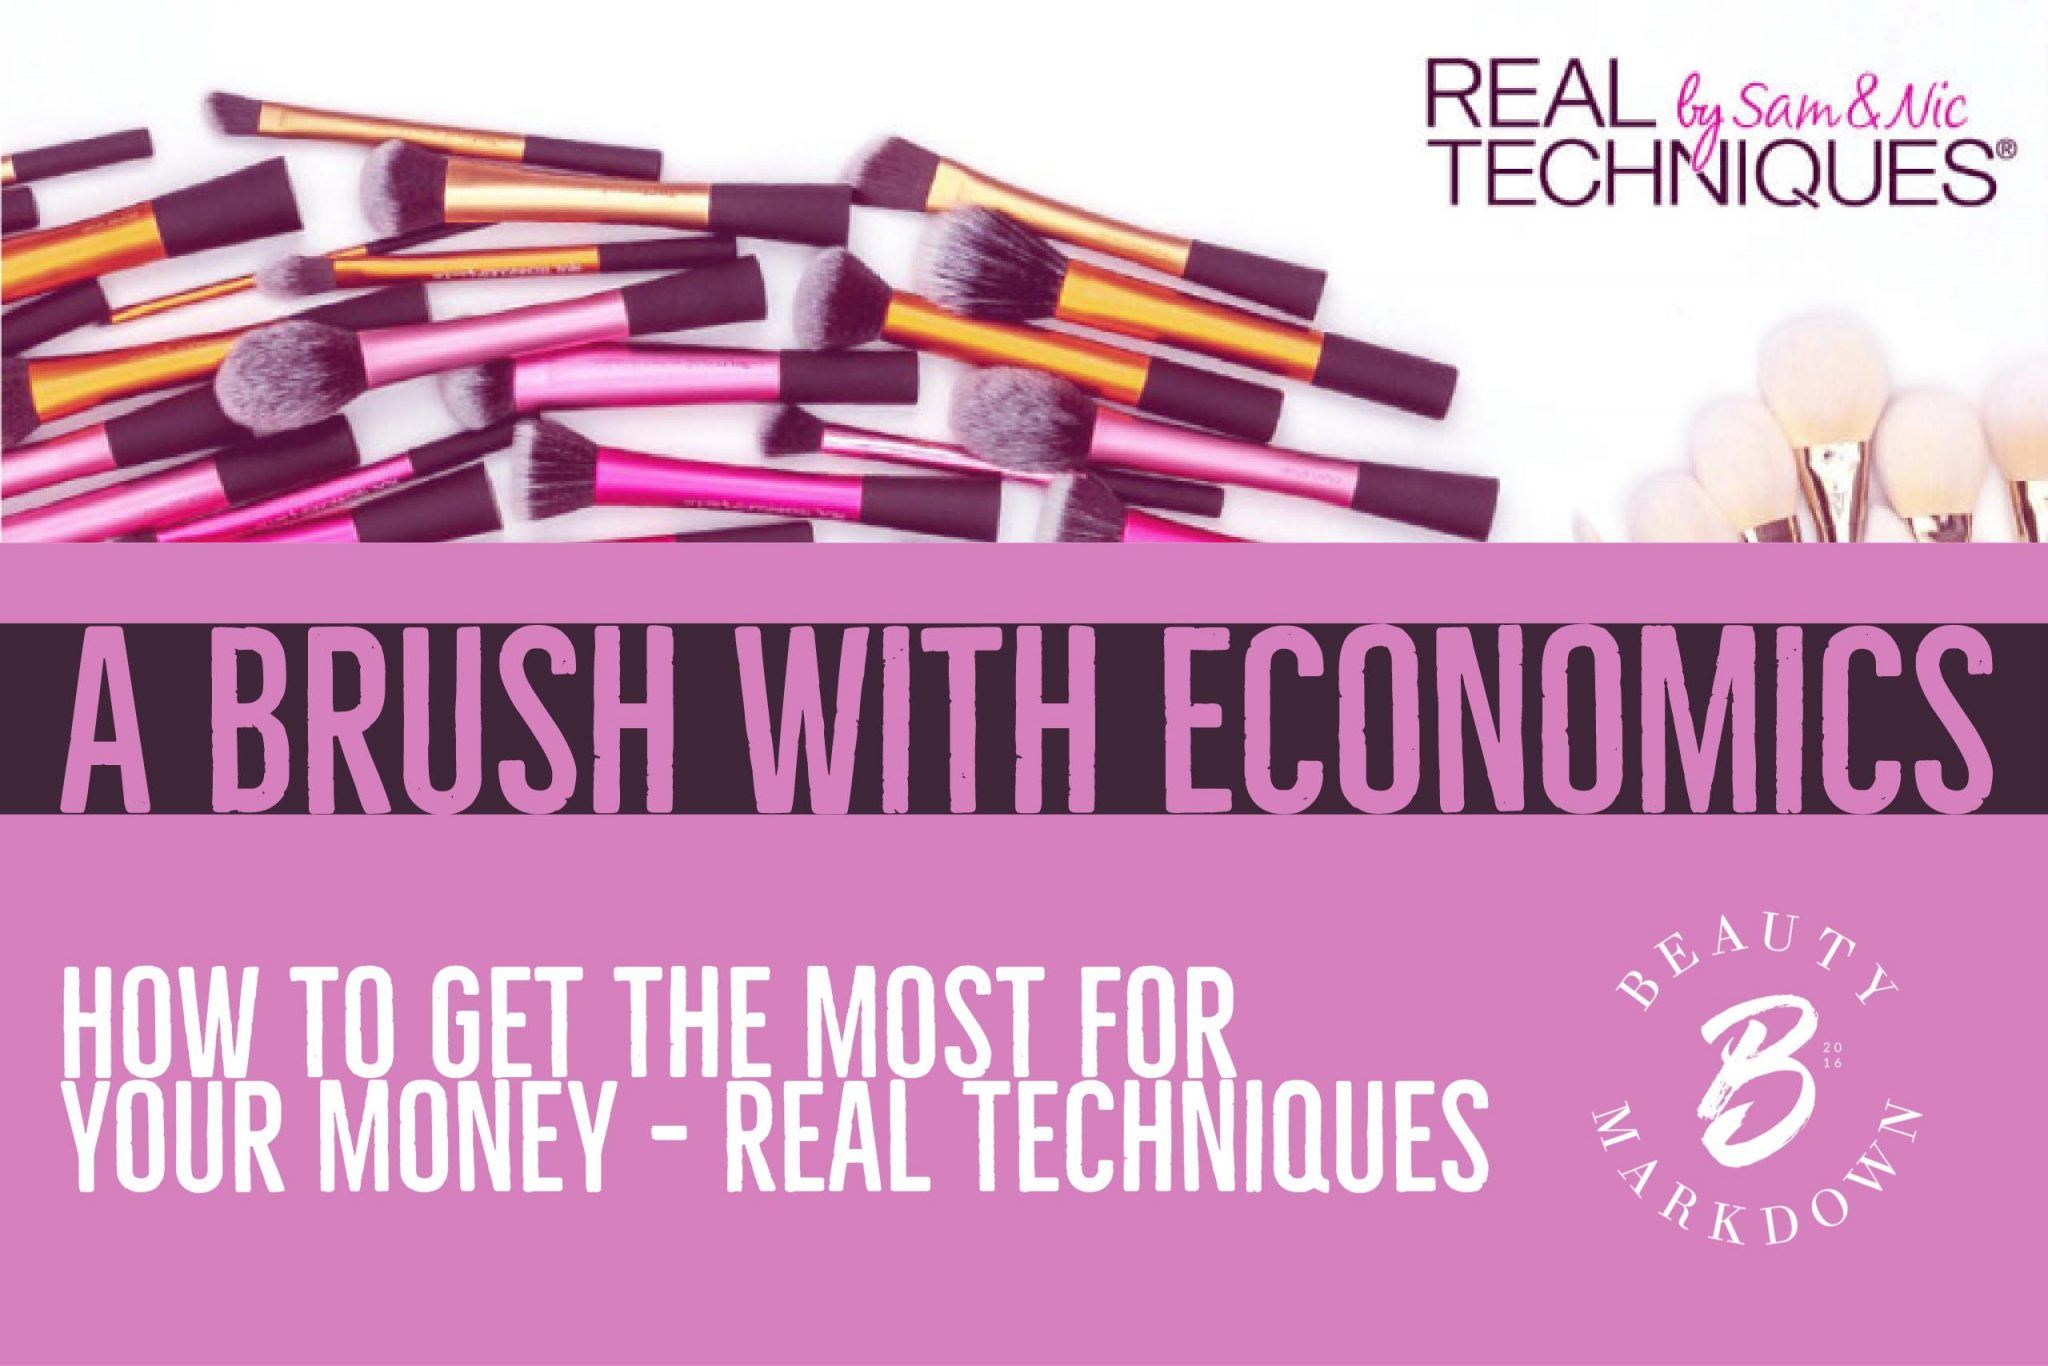 A Brush with Economics - How to get the best deals on Real Techniques